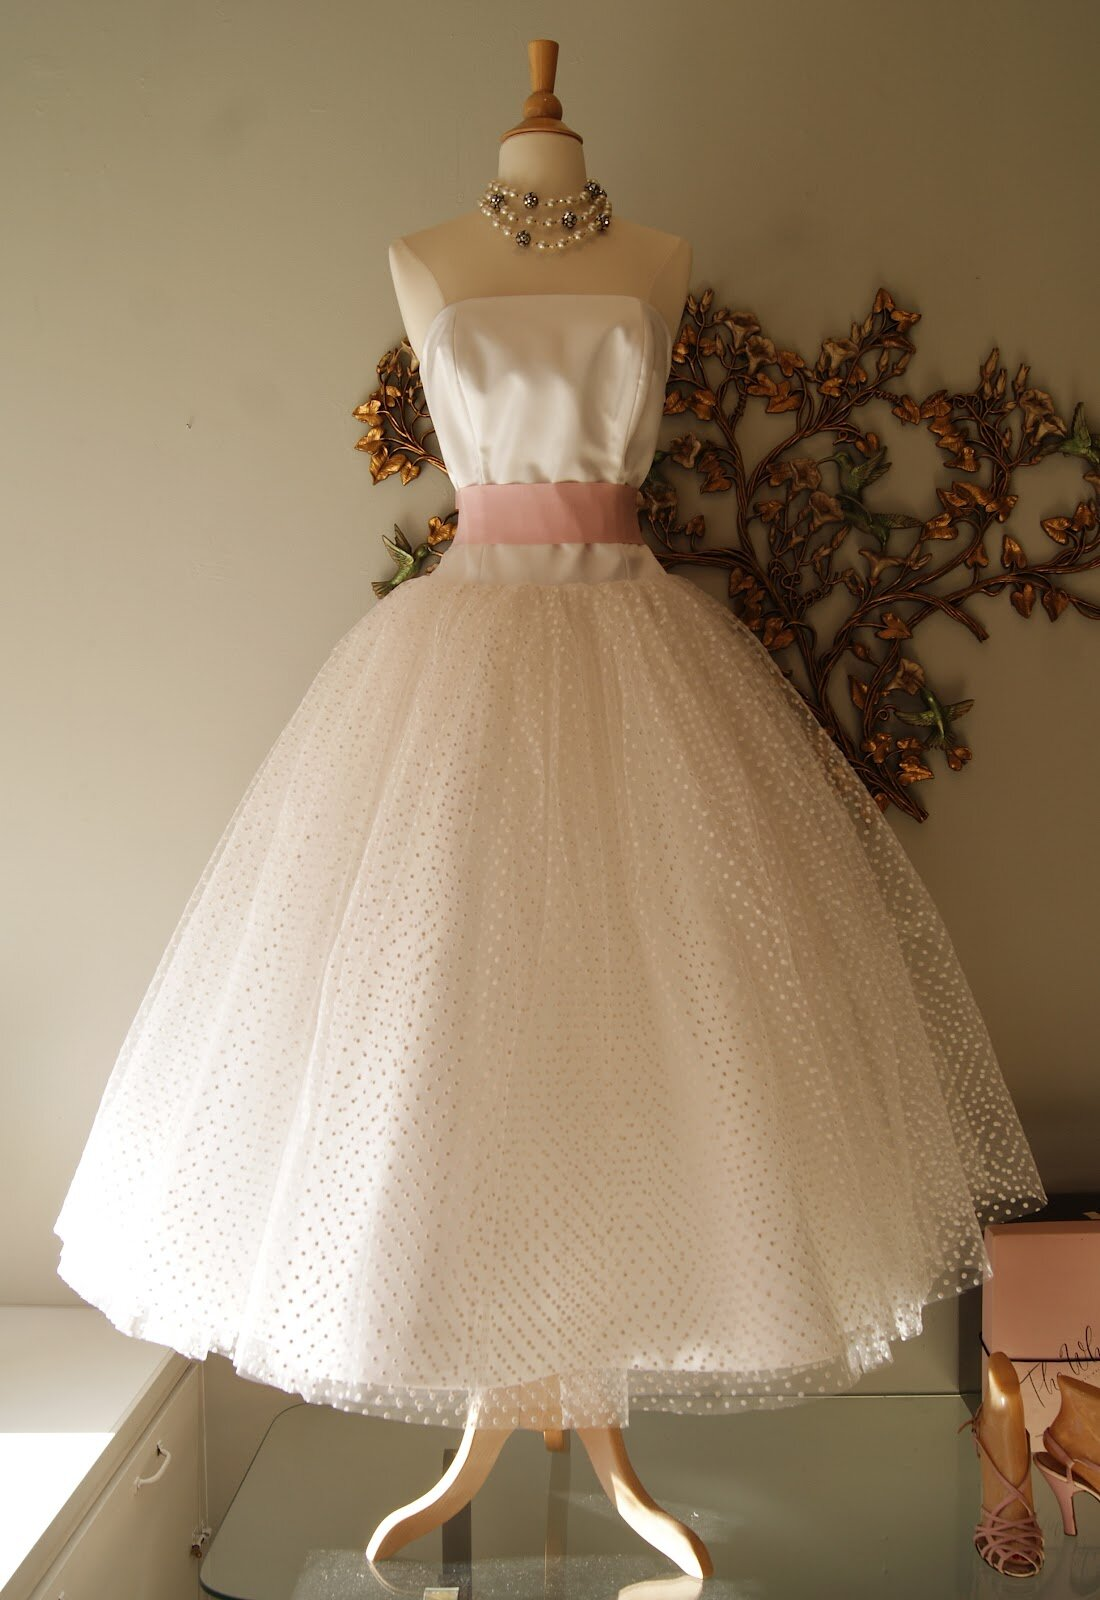 Vintage wedding dresses portland oregon: Pictures ideas, Guide to ...